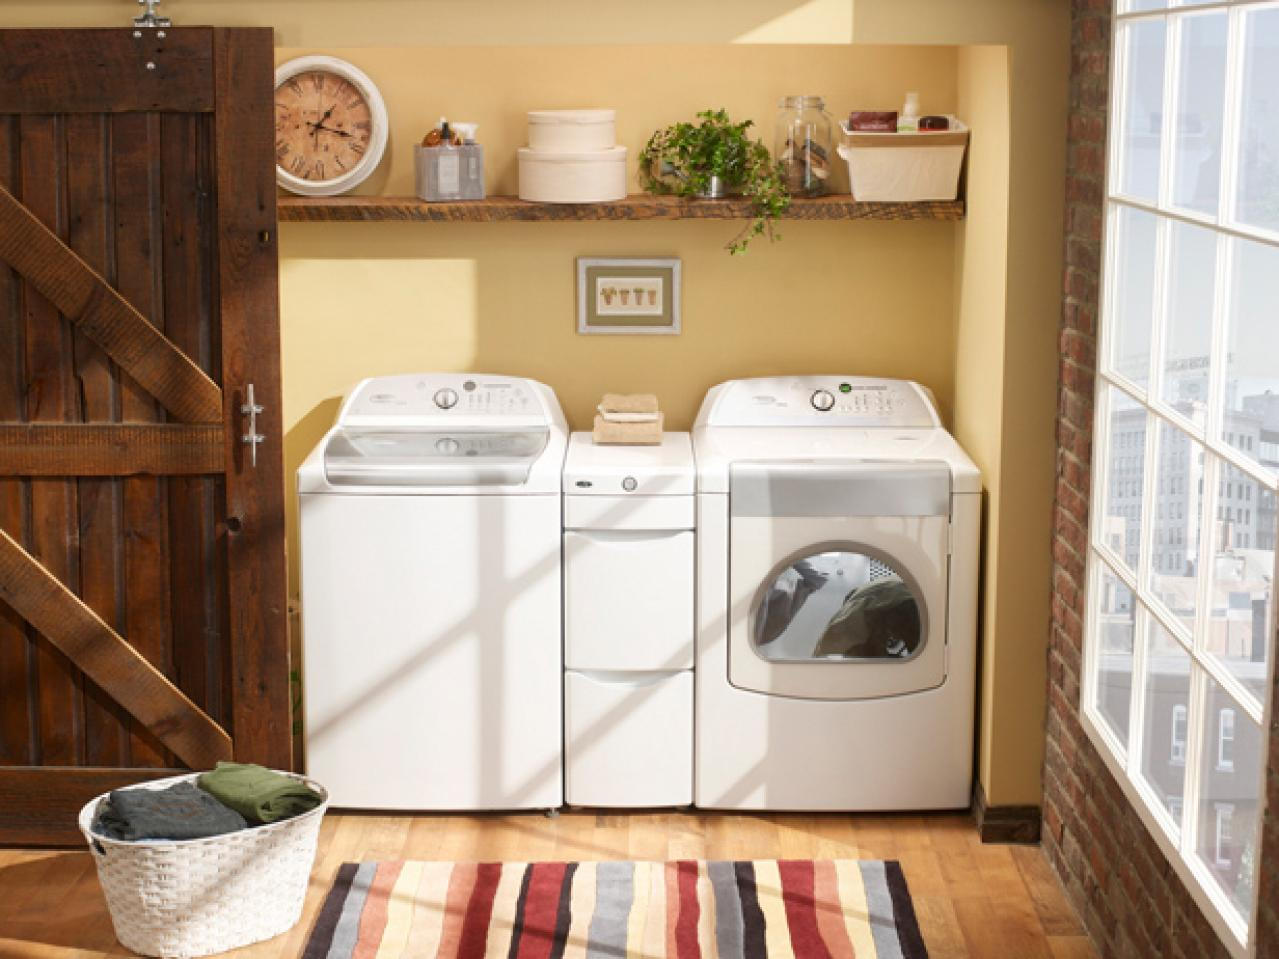 7 Stylish Laundry Room Decor Ideas Hgtv S Decorating Design Blog Hgtv